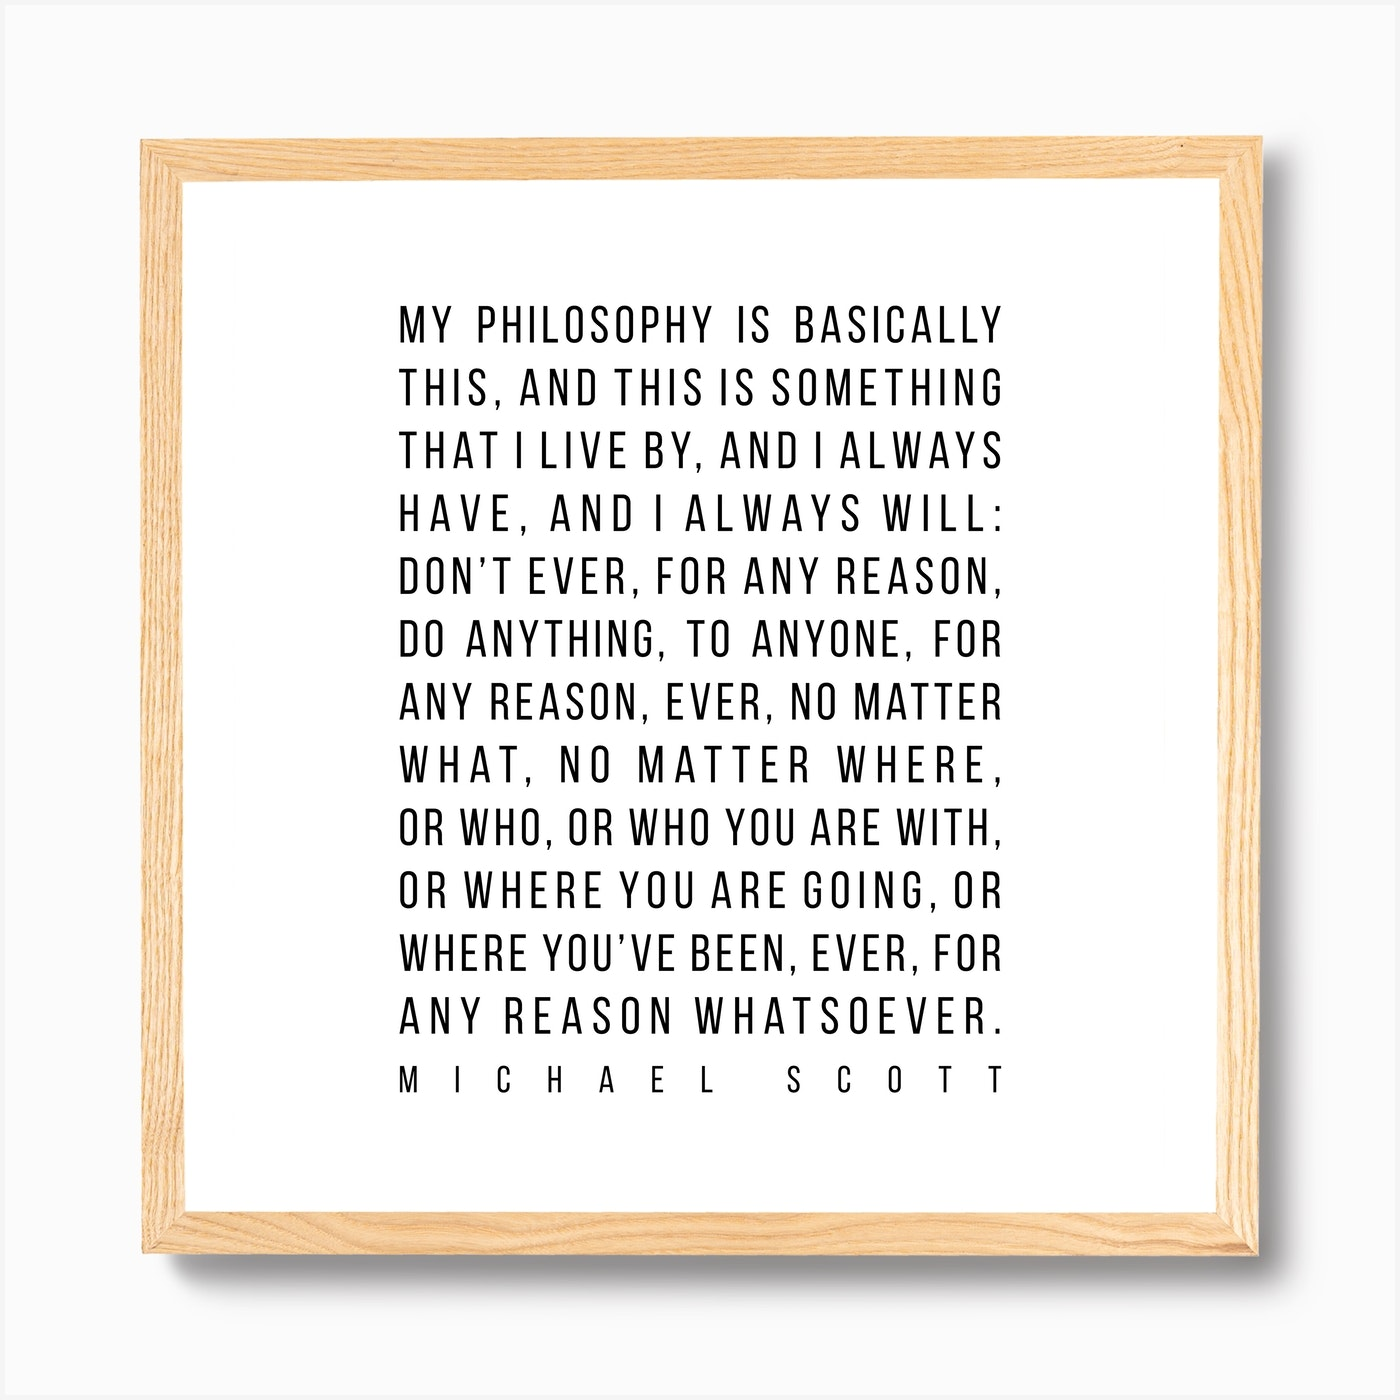 My Philosophy Is Basically This Justified Michael Scott ...